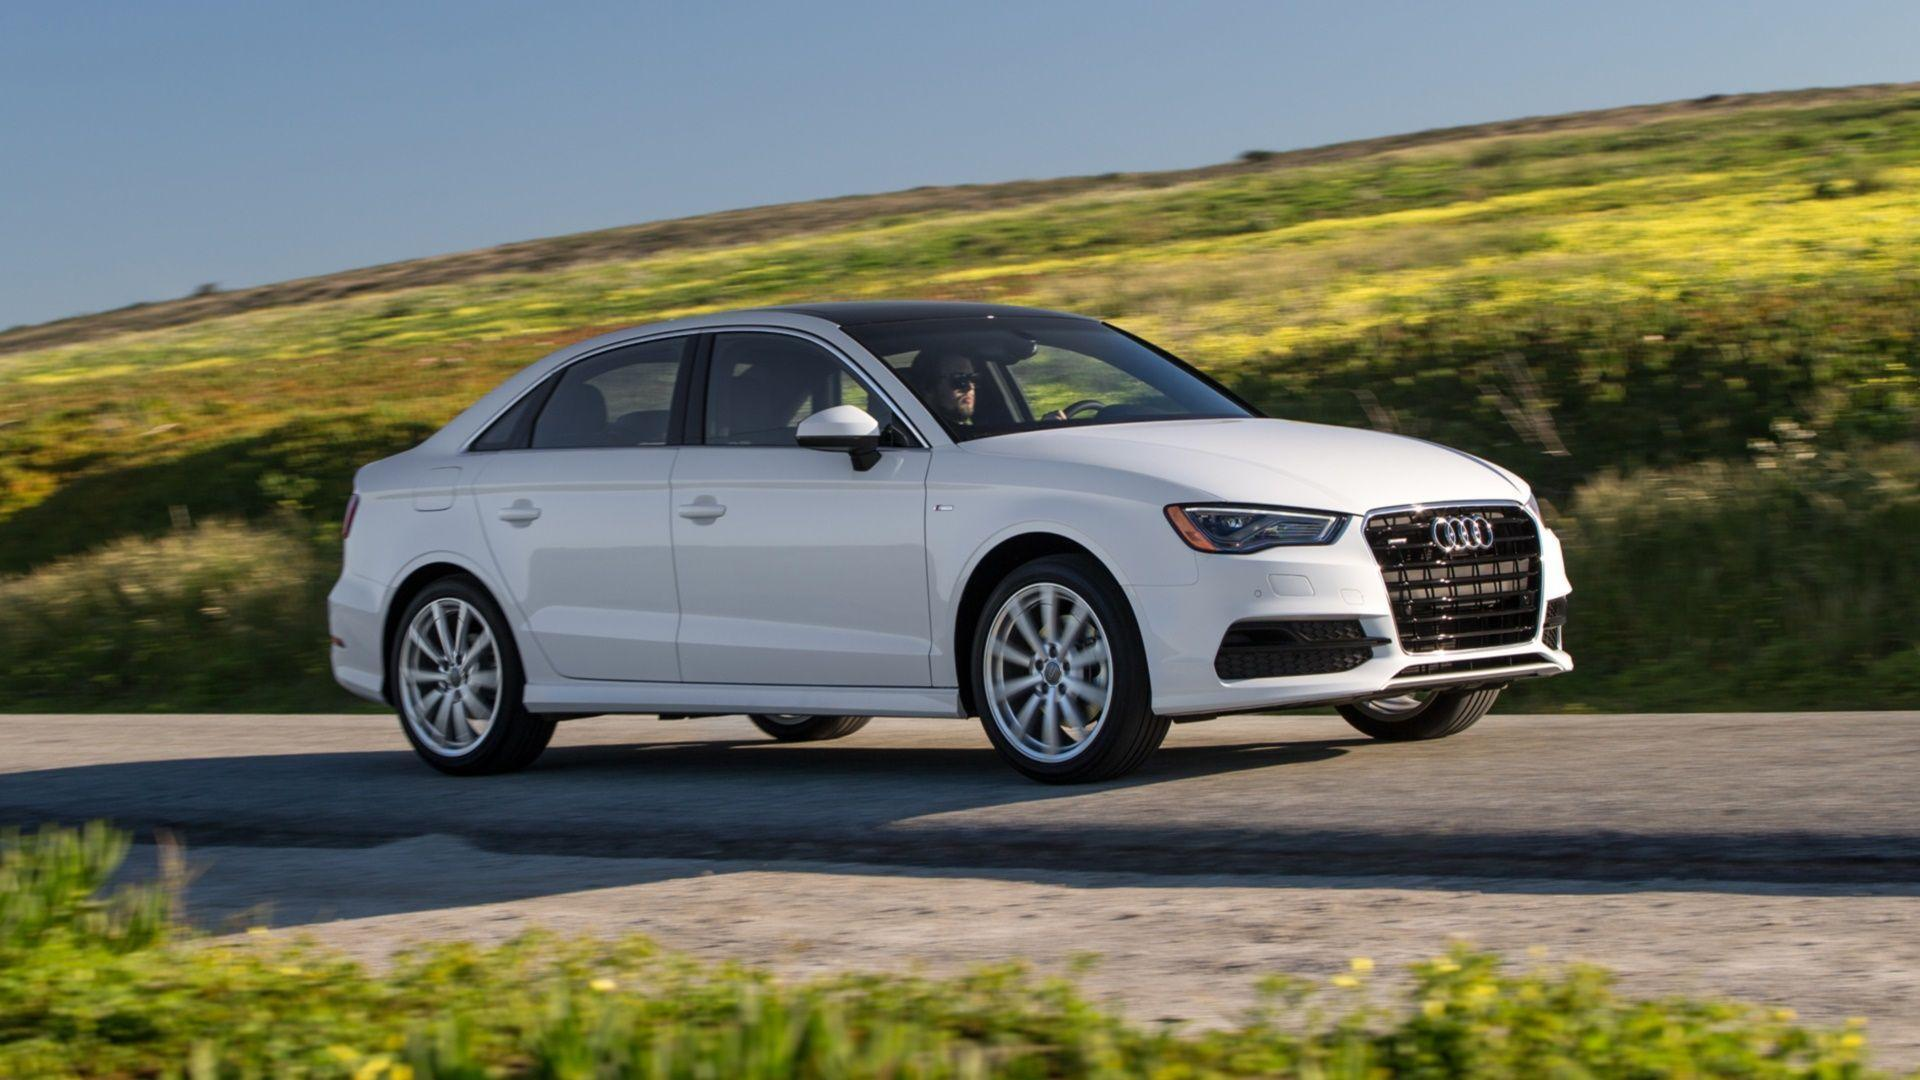 Audi A3 Wallpapers, Pictures, Images